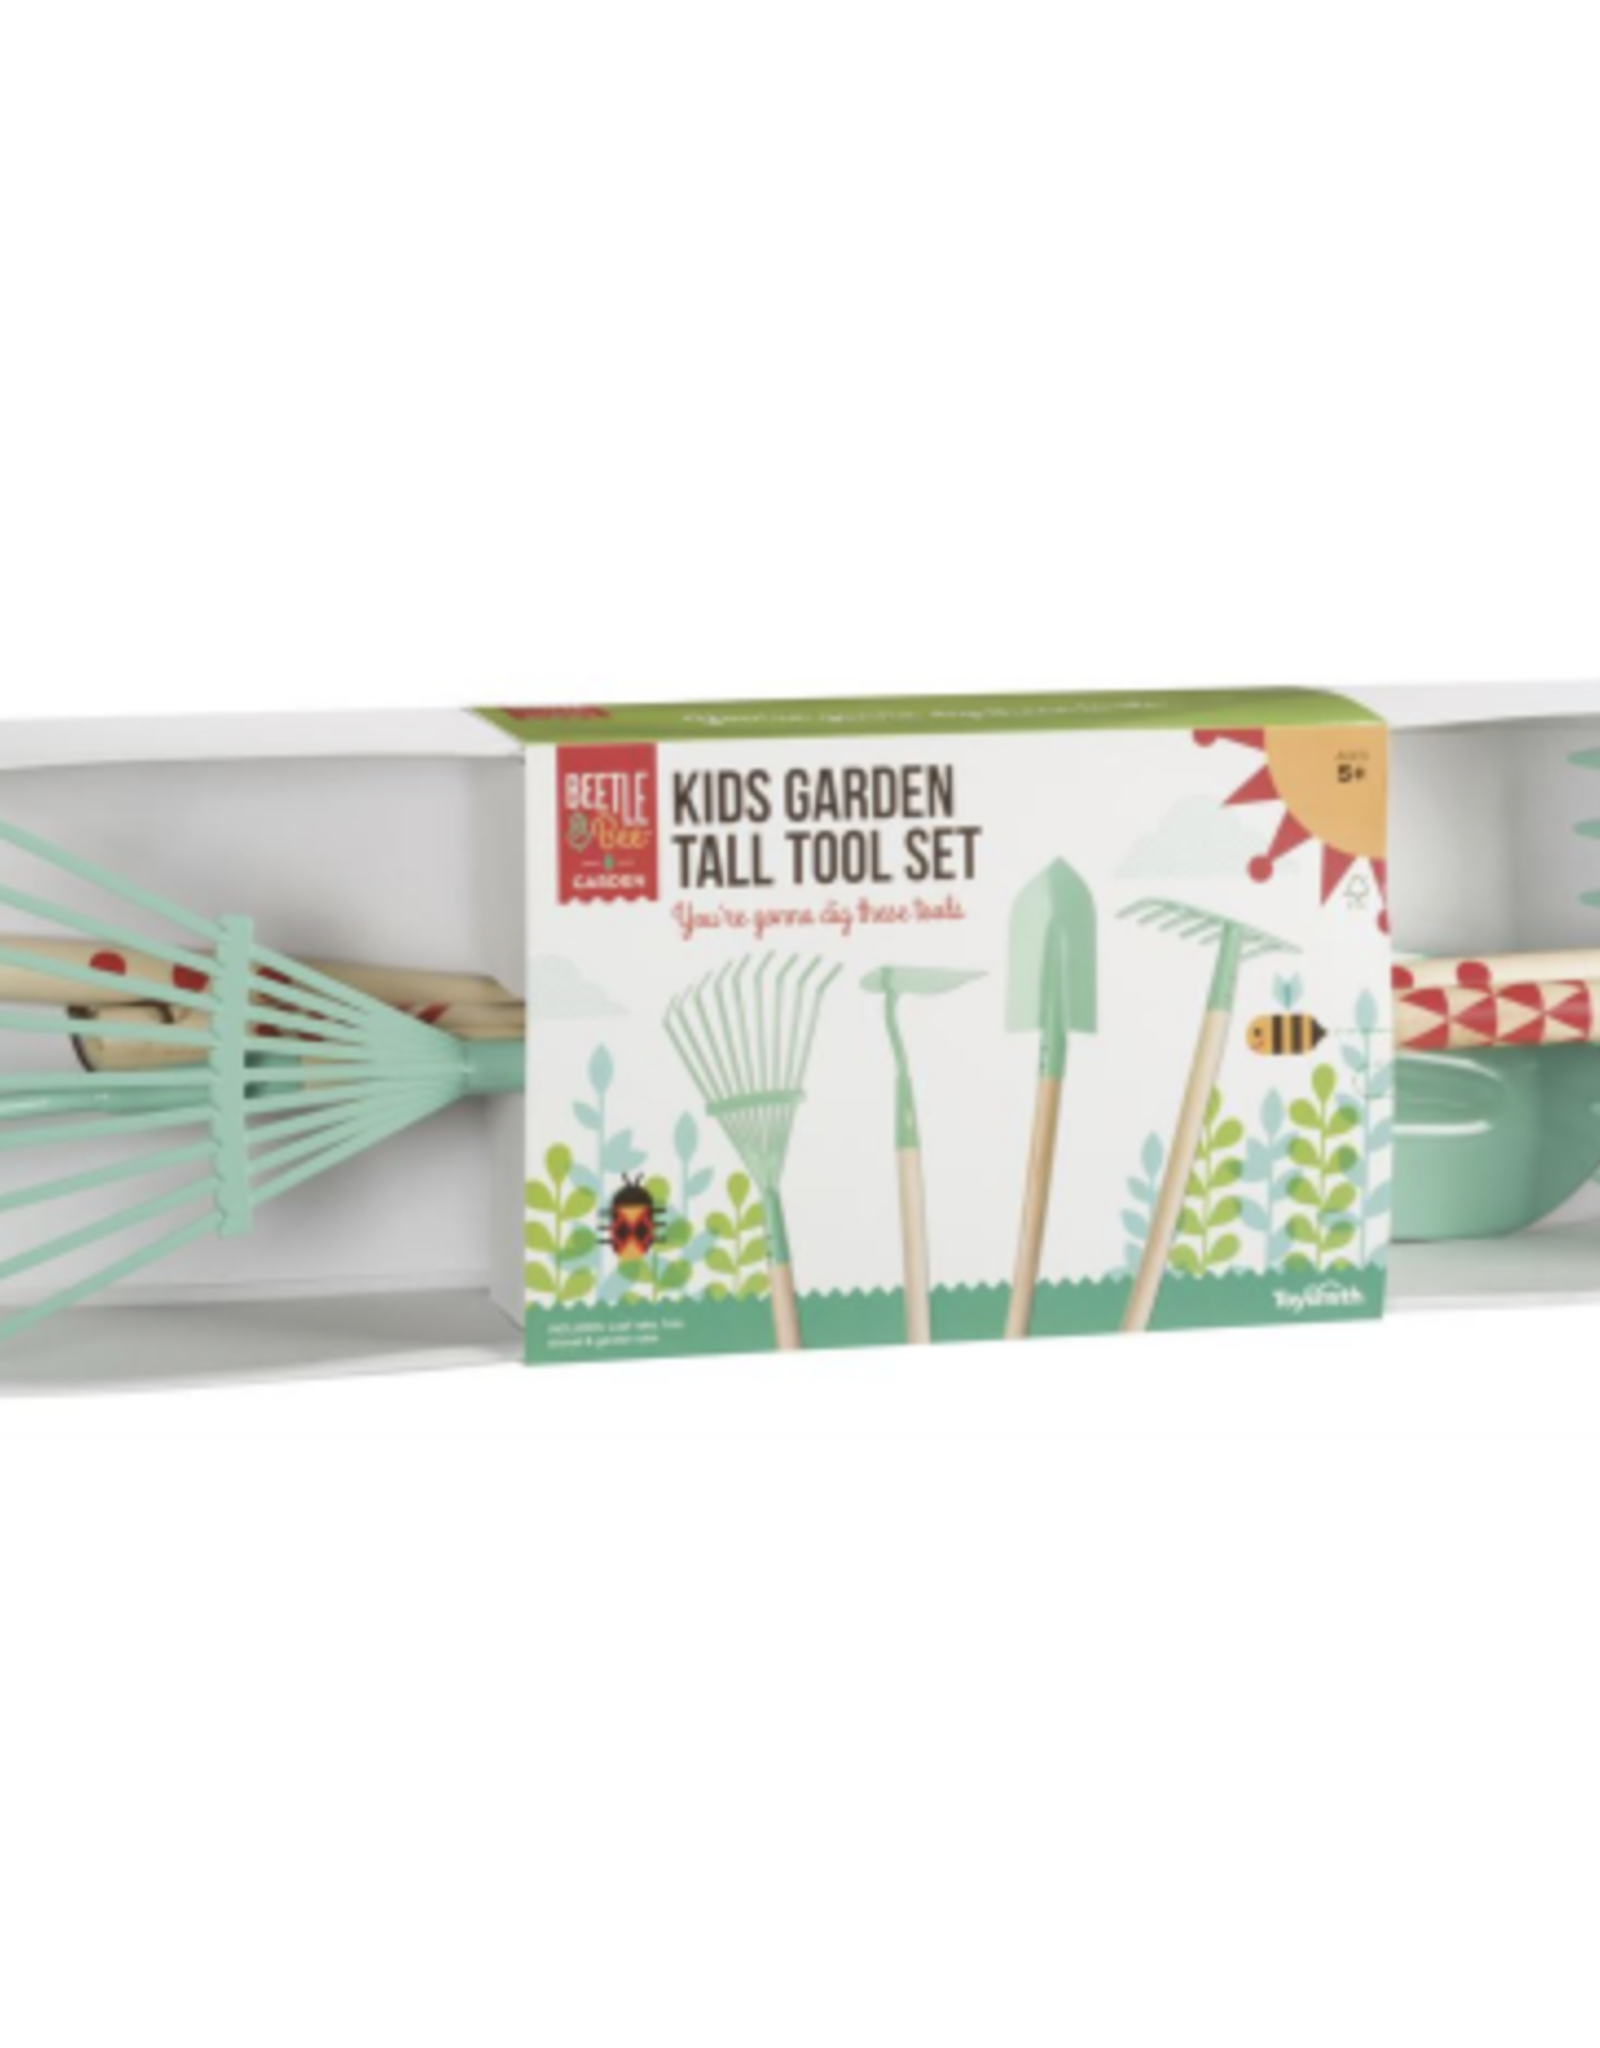 KIDS GARDEN TALL TOOL SET